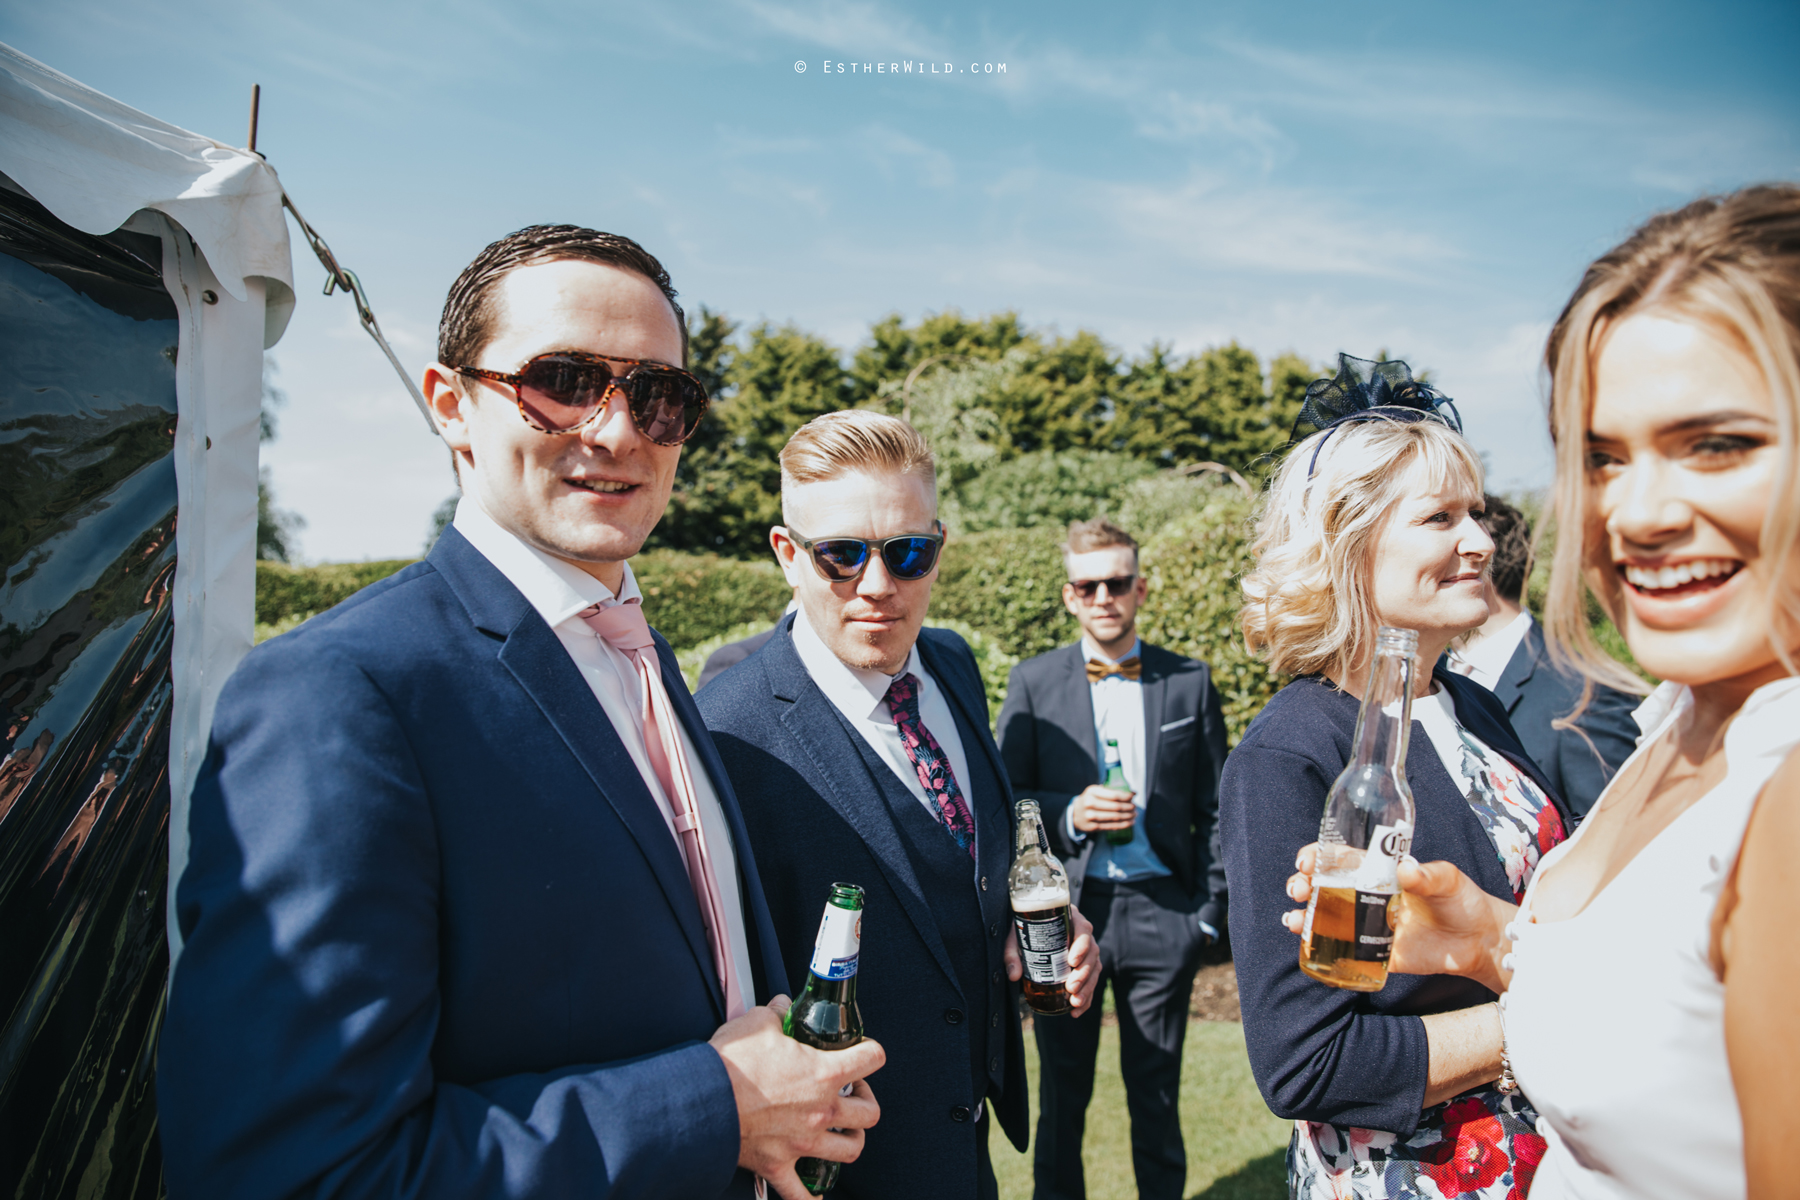 Wootton_Wedding_Copyright_Esther_Wild_Photographer_IMG_1560.jpg